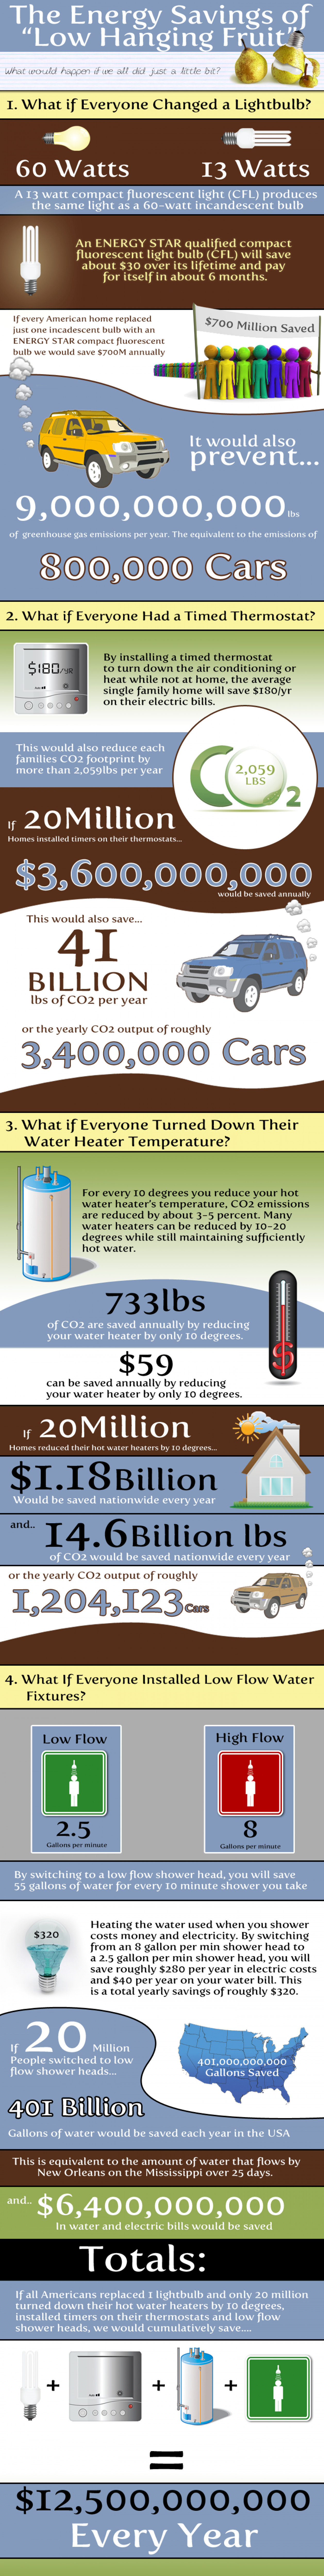 The Energy Savings of Low Hanging Fruit Infographic